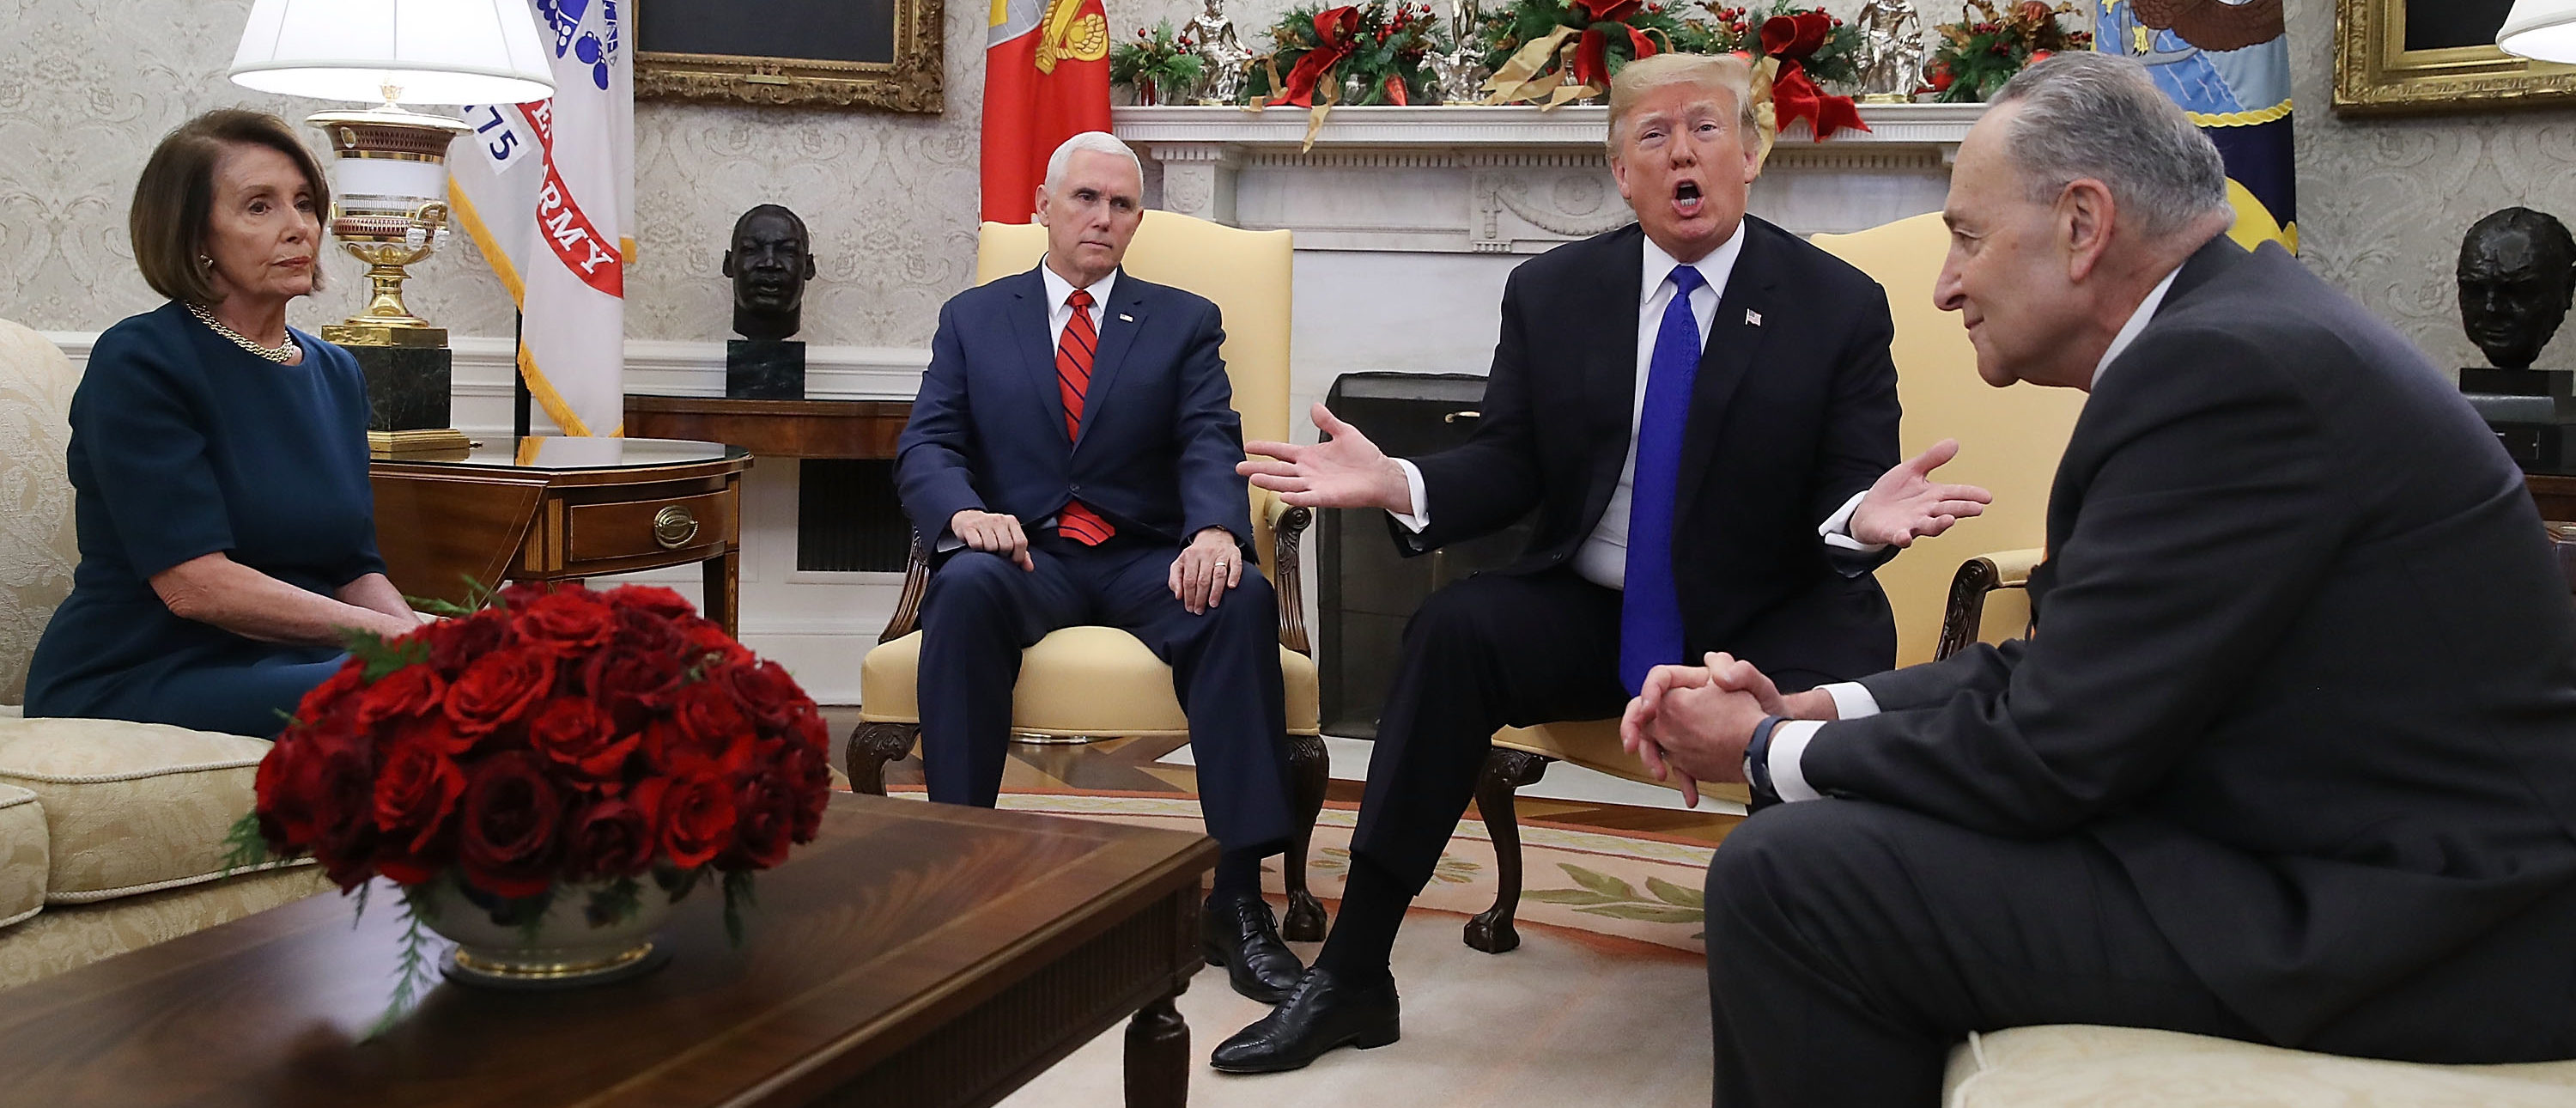 U.S. President Donald Trump (2R) argues about border security with Senate Minority Leader Chuck Schumer (D-NY) (R) and House Minority Leader Nancy Pelosi (D-CA) as Vice President Mike Pence sits nearby in the Oval Office on December 11, 2018 in Washington, DC. (Photo by Mark Wilson/Getty Images)